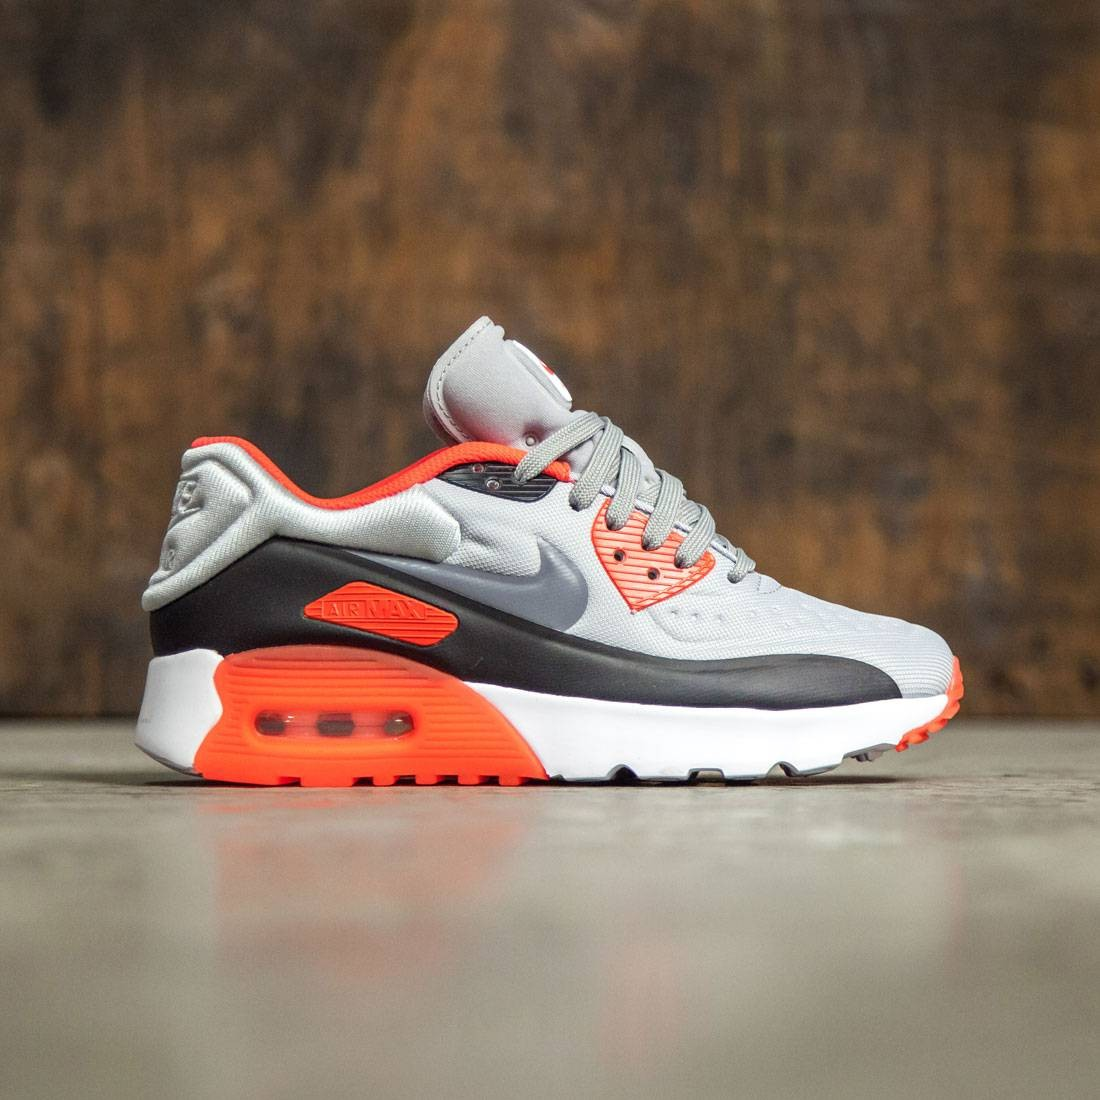 newest 91ca2 51ab0 Nike Big Kids Nike Air Max 90 Ultra Se (Gs) (wolf grey   cool grey-bright  crimson-black)